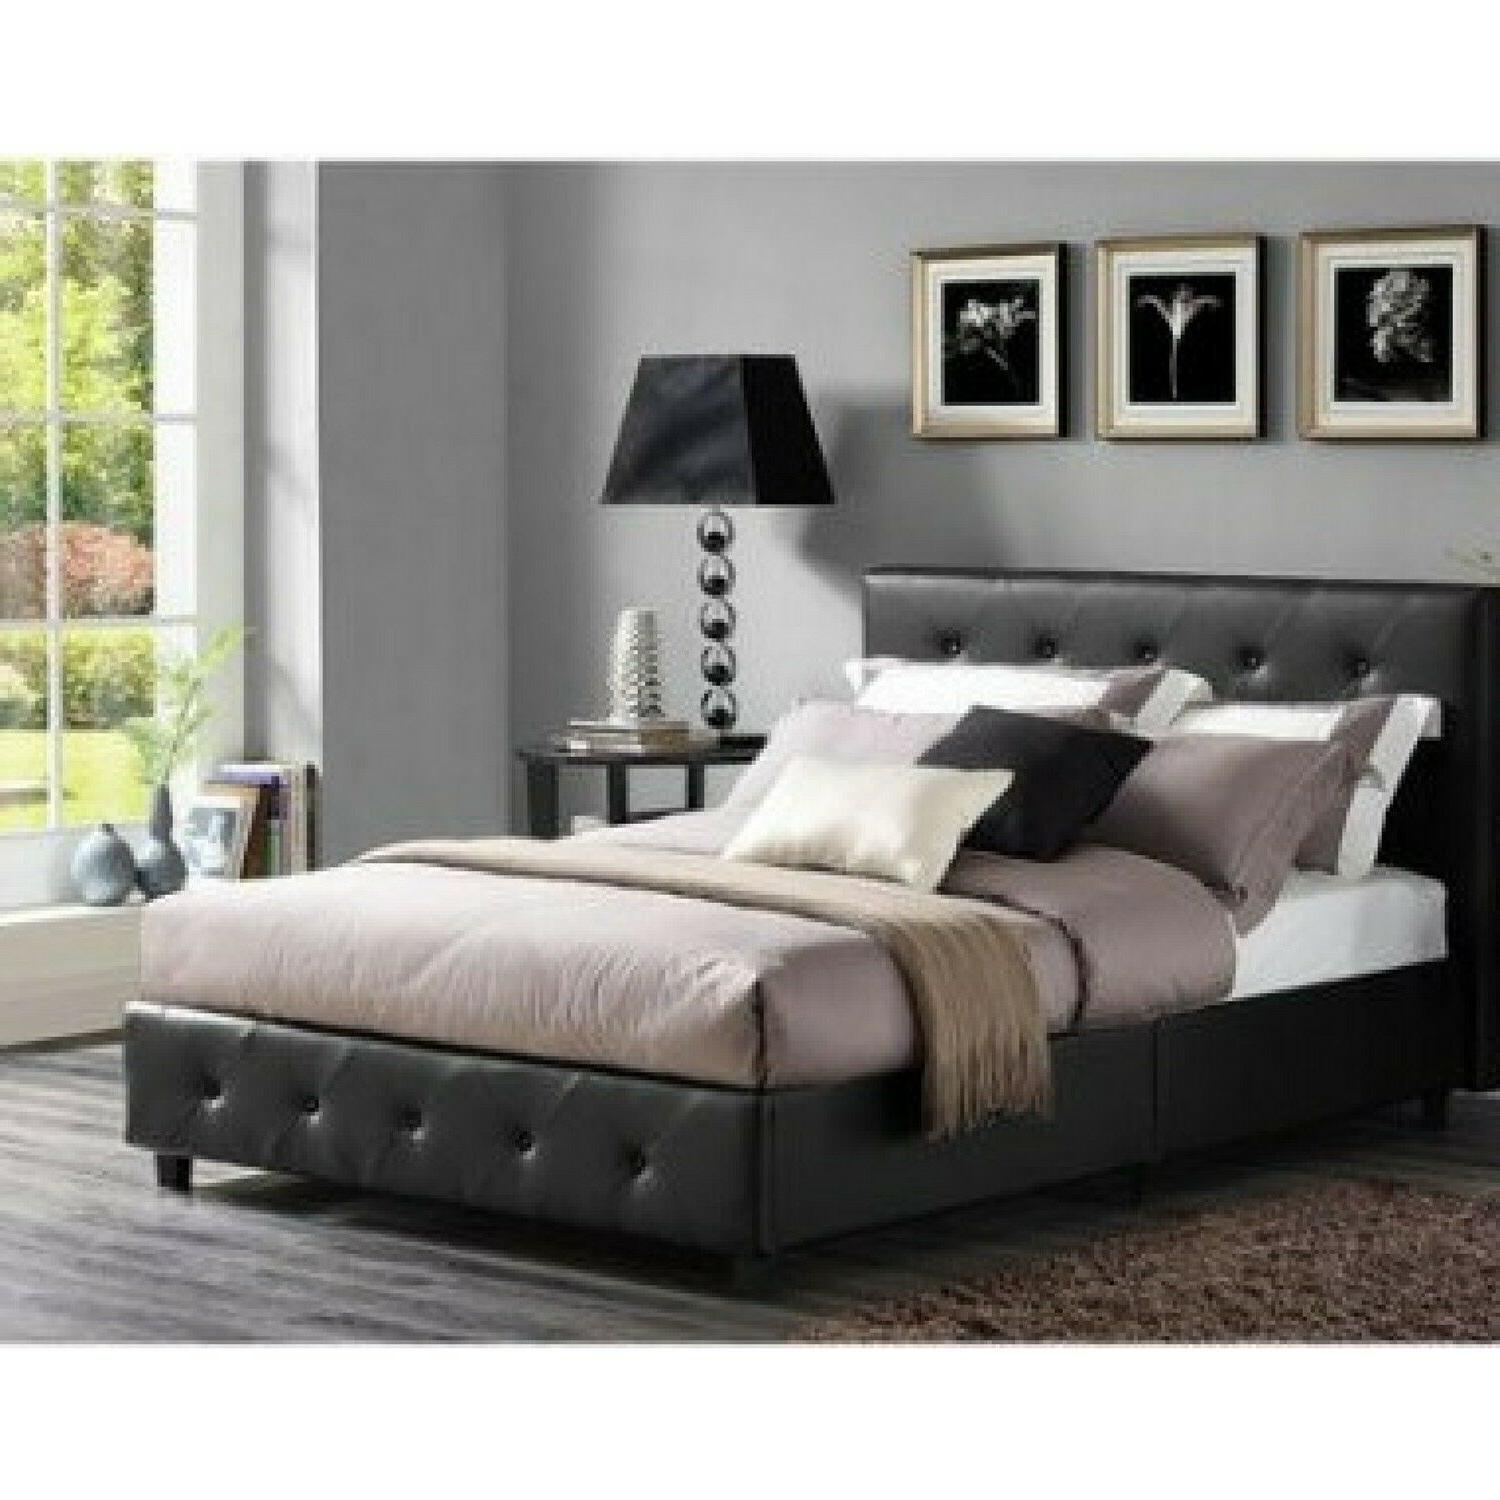 3 Piece Bedroom Set Queen Size Furniture Black Leather Bed 2